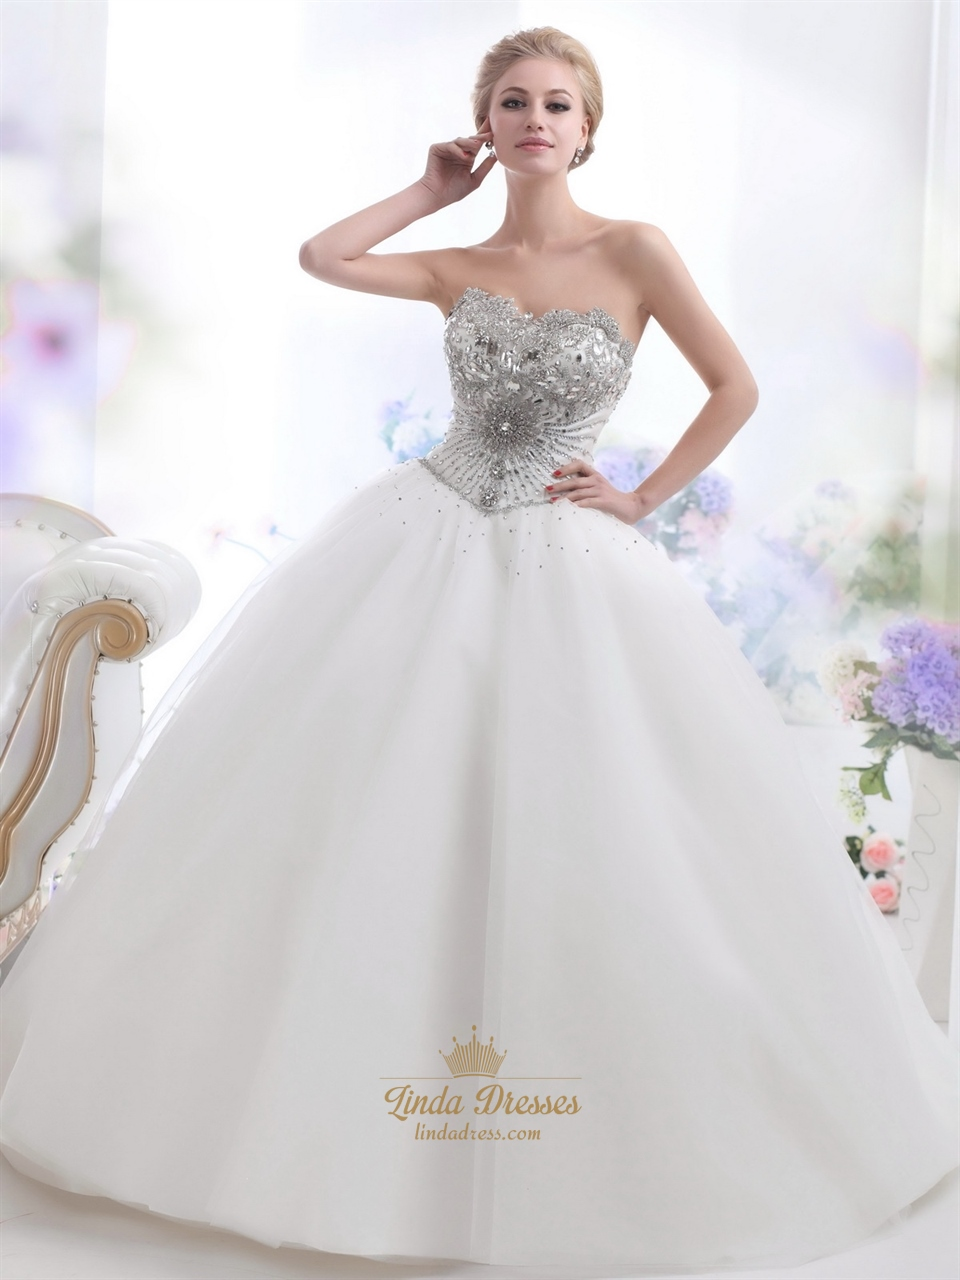 sequins wedding dresses sweetheart sleeveless crystal organza ball gown floor length lace up bridal gowns bo wedding ball gown dresses Sequins Wedding Dresses Sweetheart Sleeveless Crystal Organza Ball Gown Floor Length Lace up Bridal Gowns BO